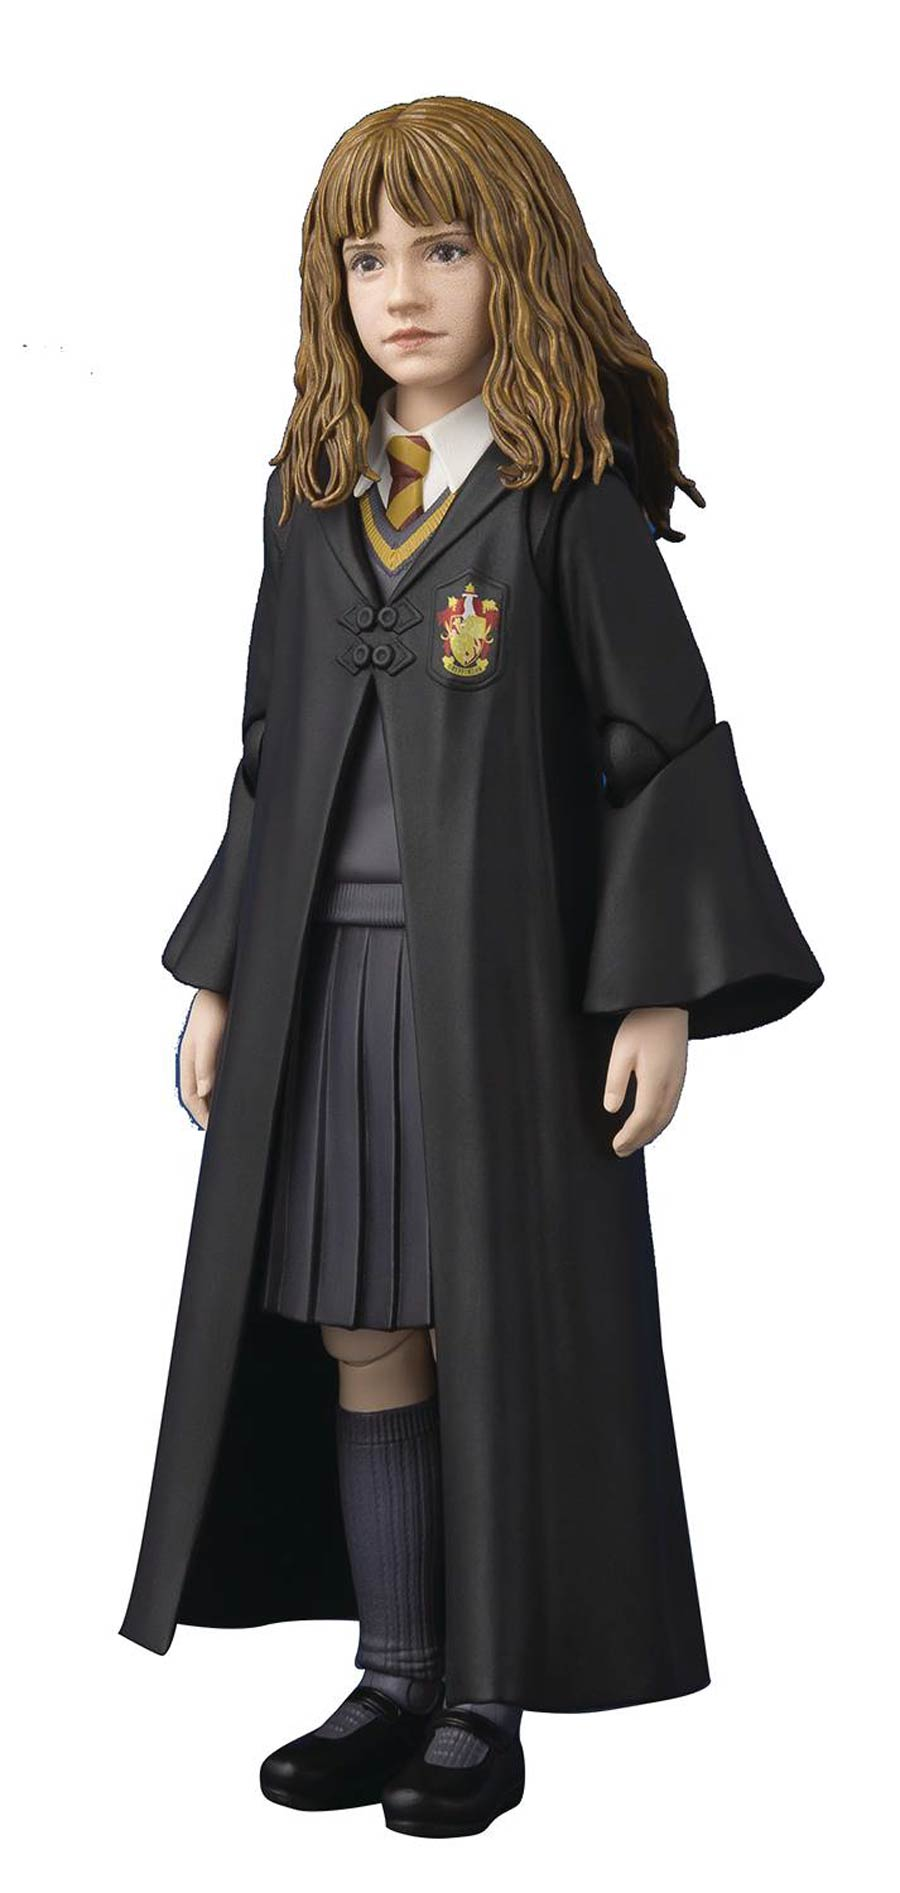 Harry Potter And The Sorcerers Stone S. H. Figuarts - Hermione Granger Action Figure